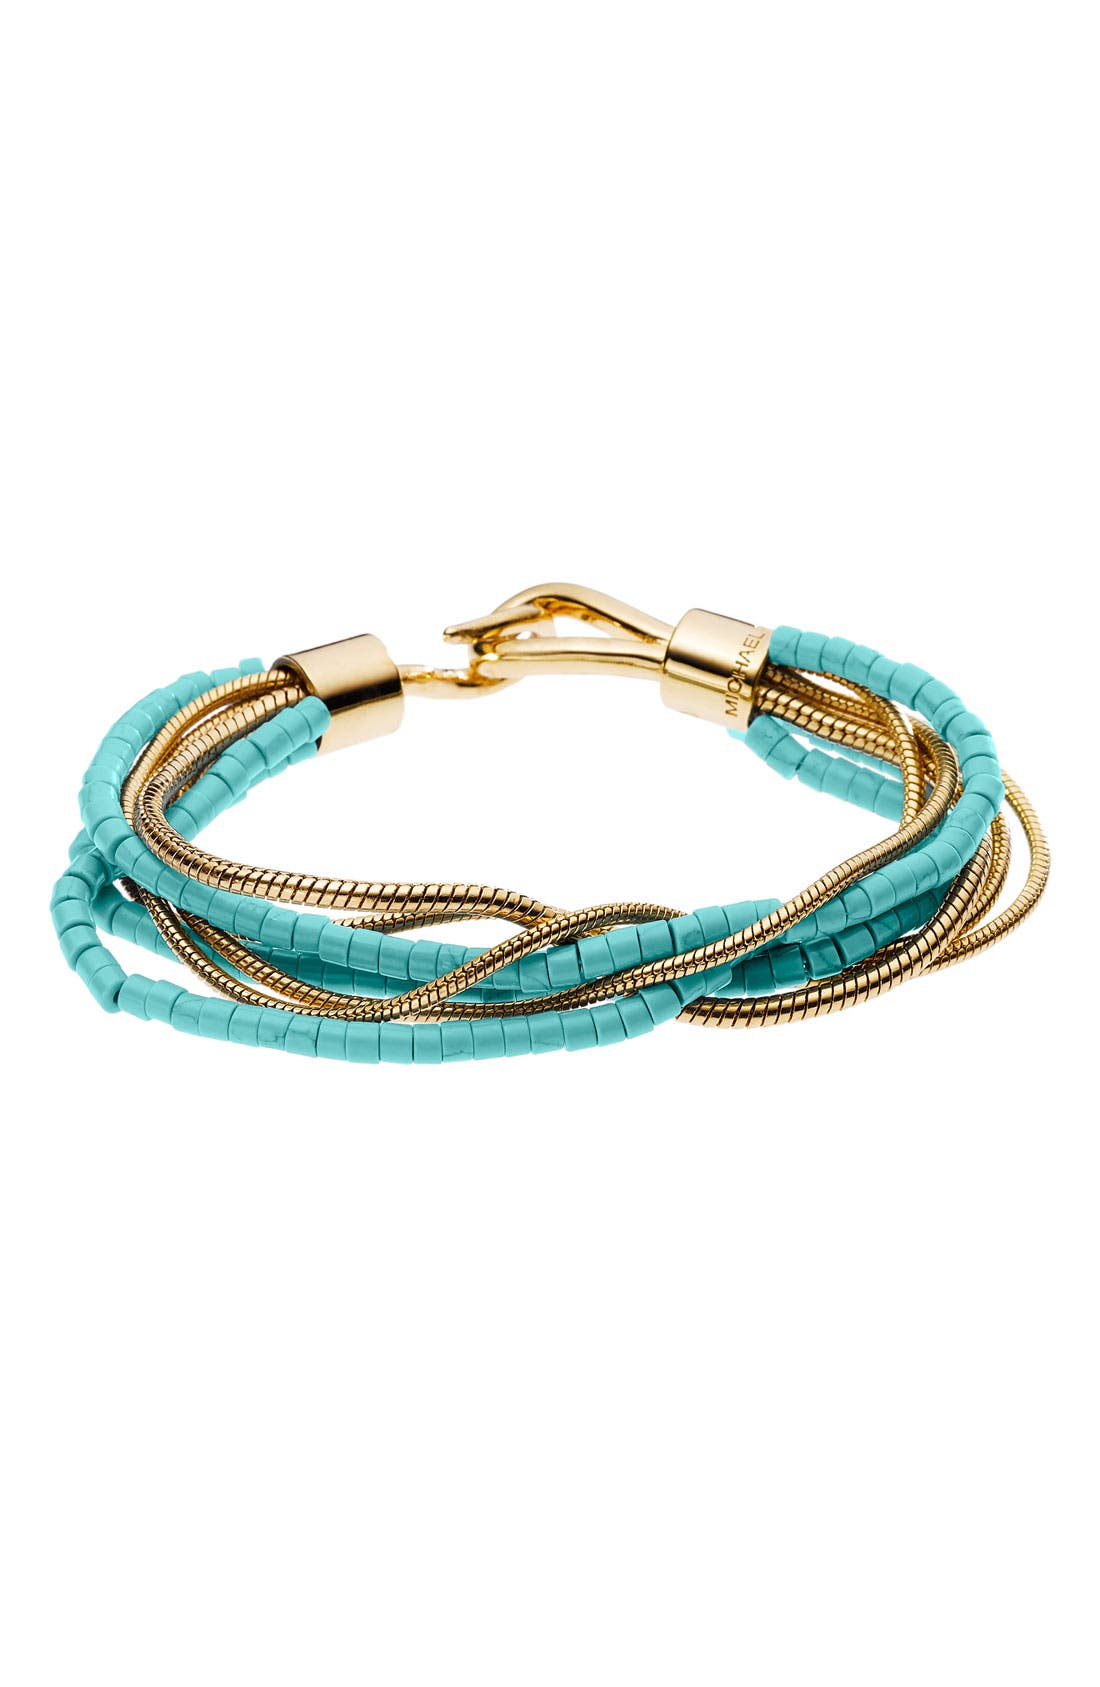 Main Image - Michael Kors 'Sleek Exotics' Multistrand Bracelet